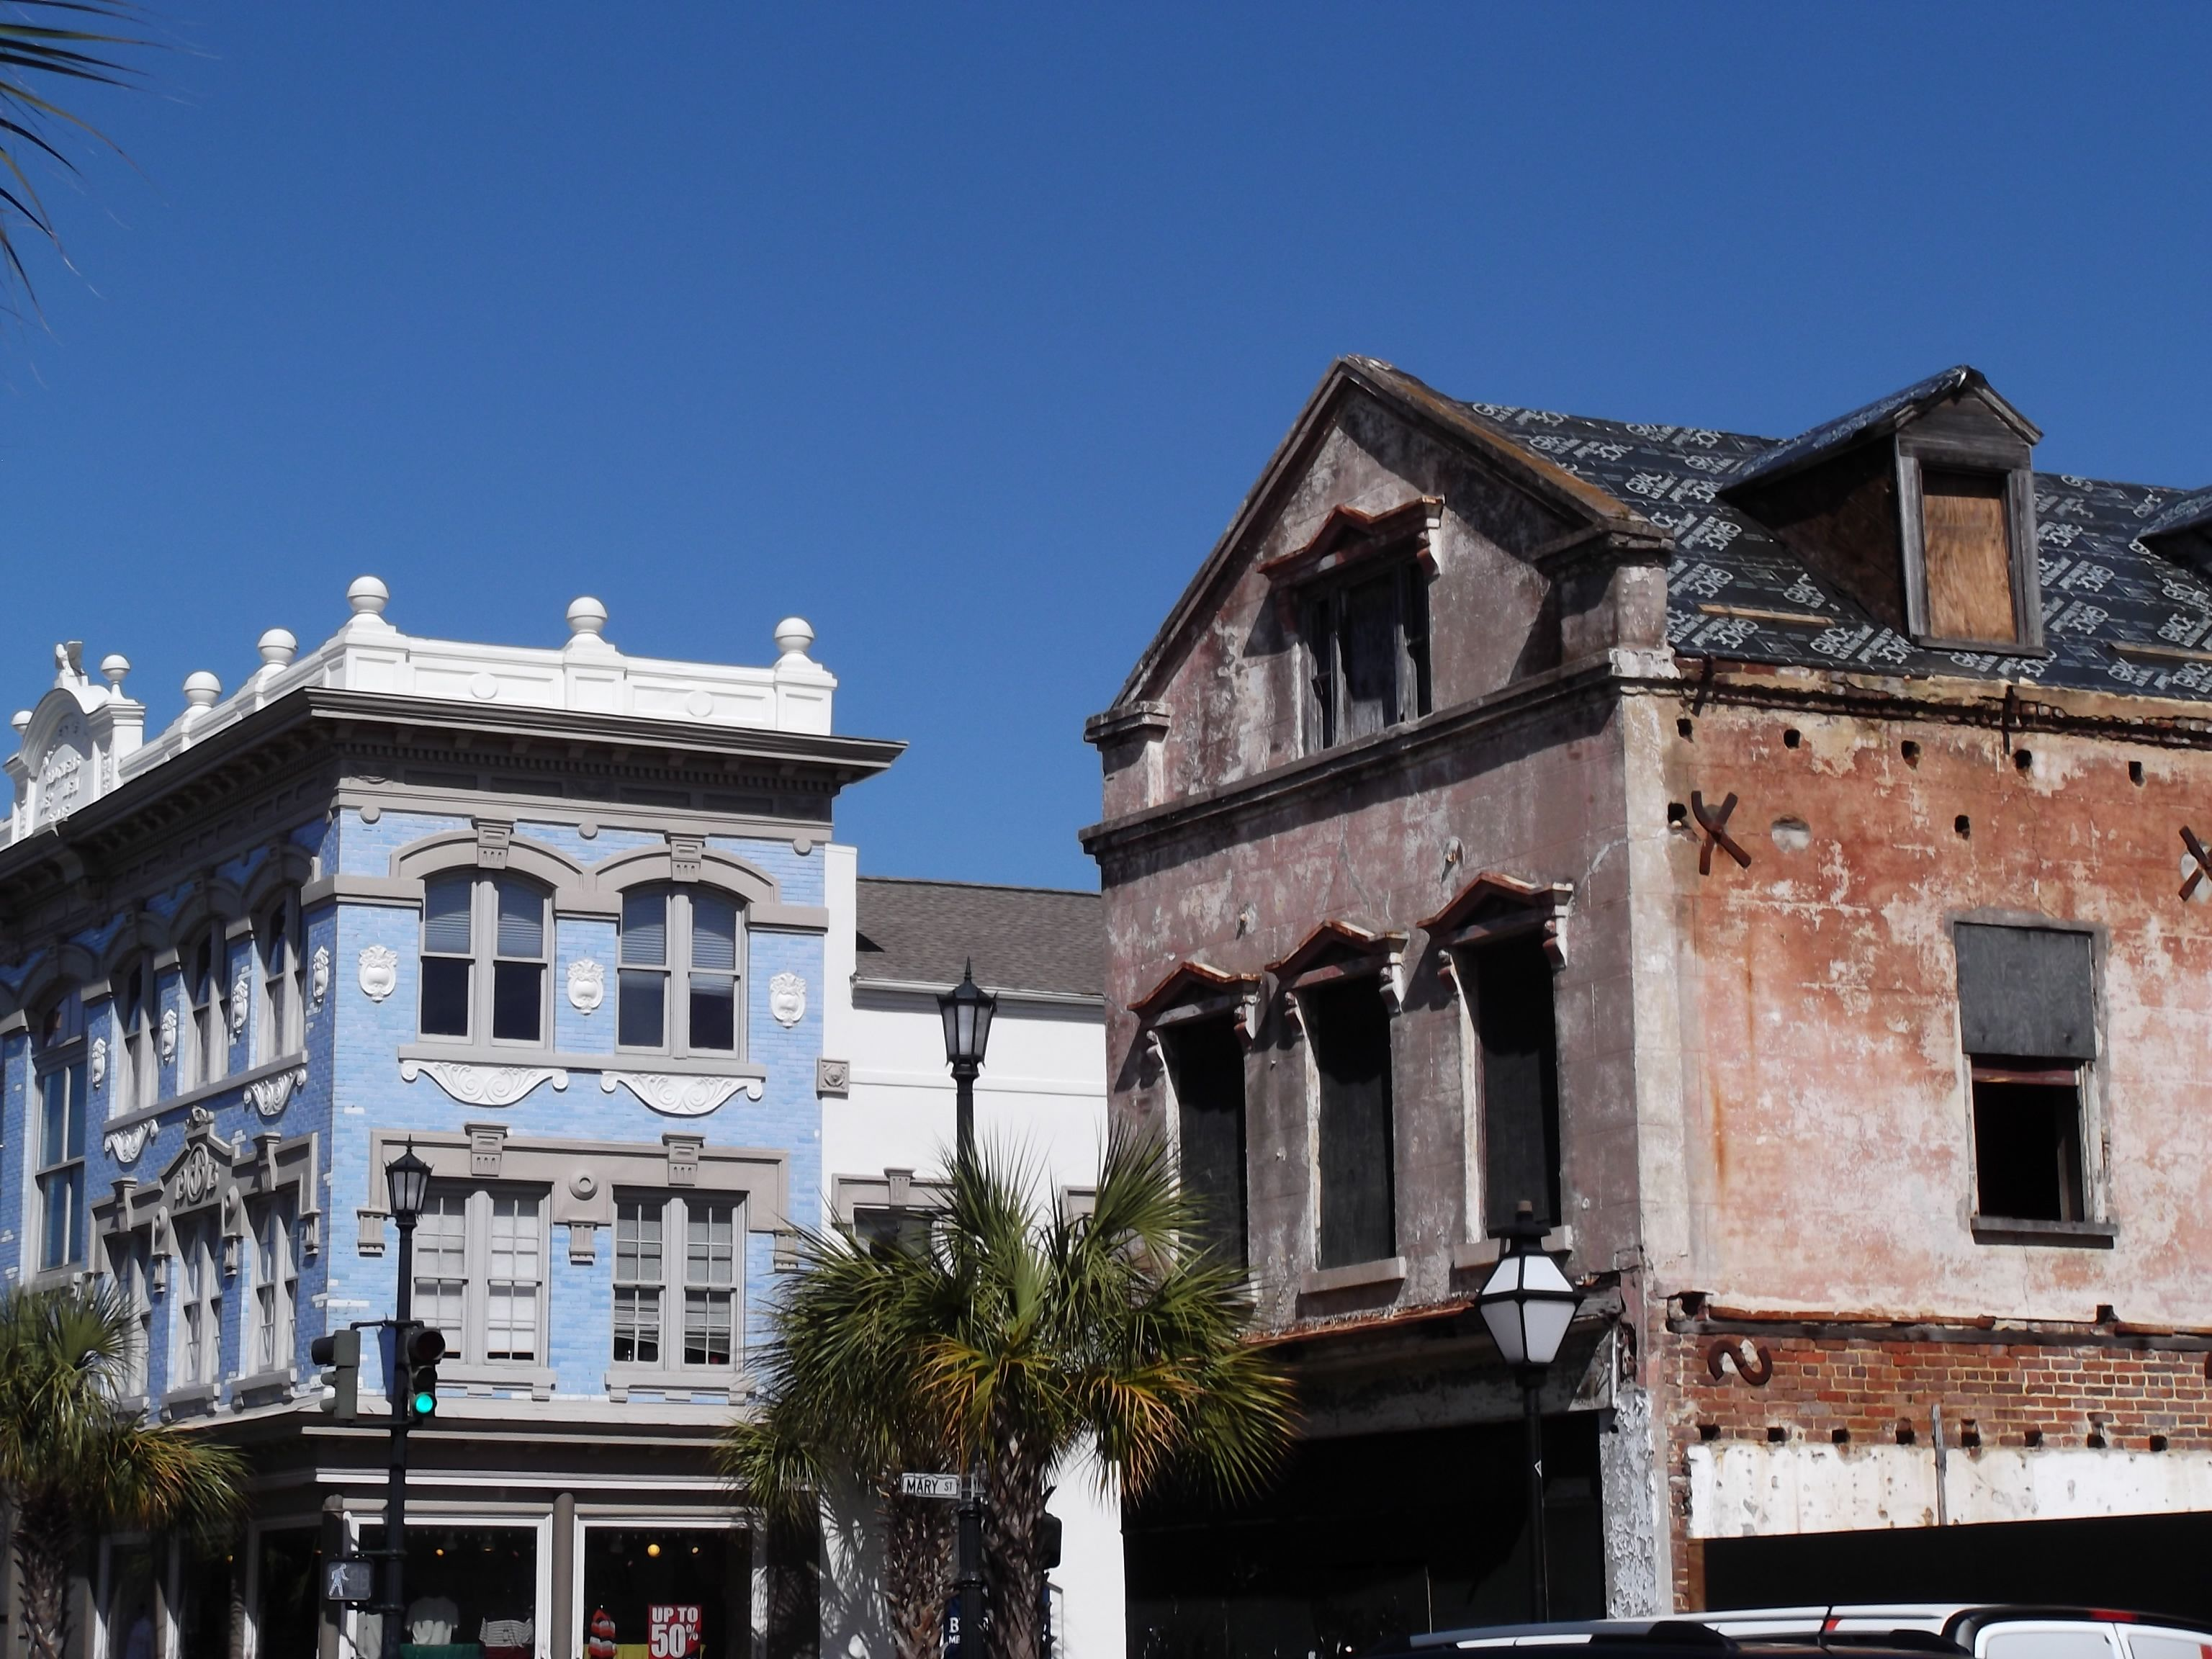 love the historic buildings